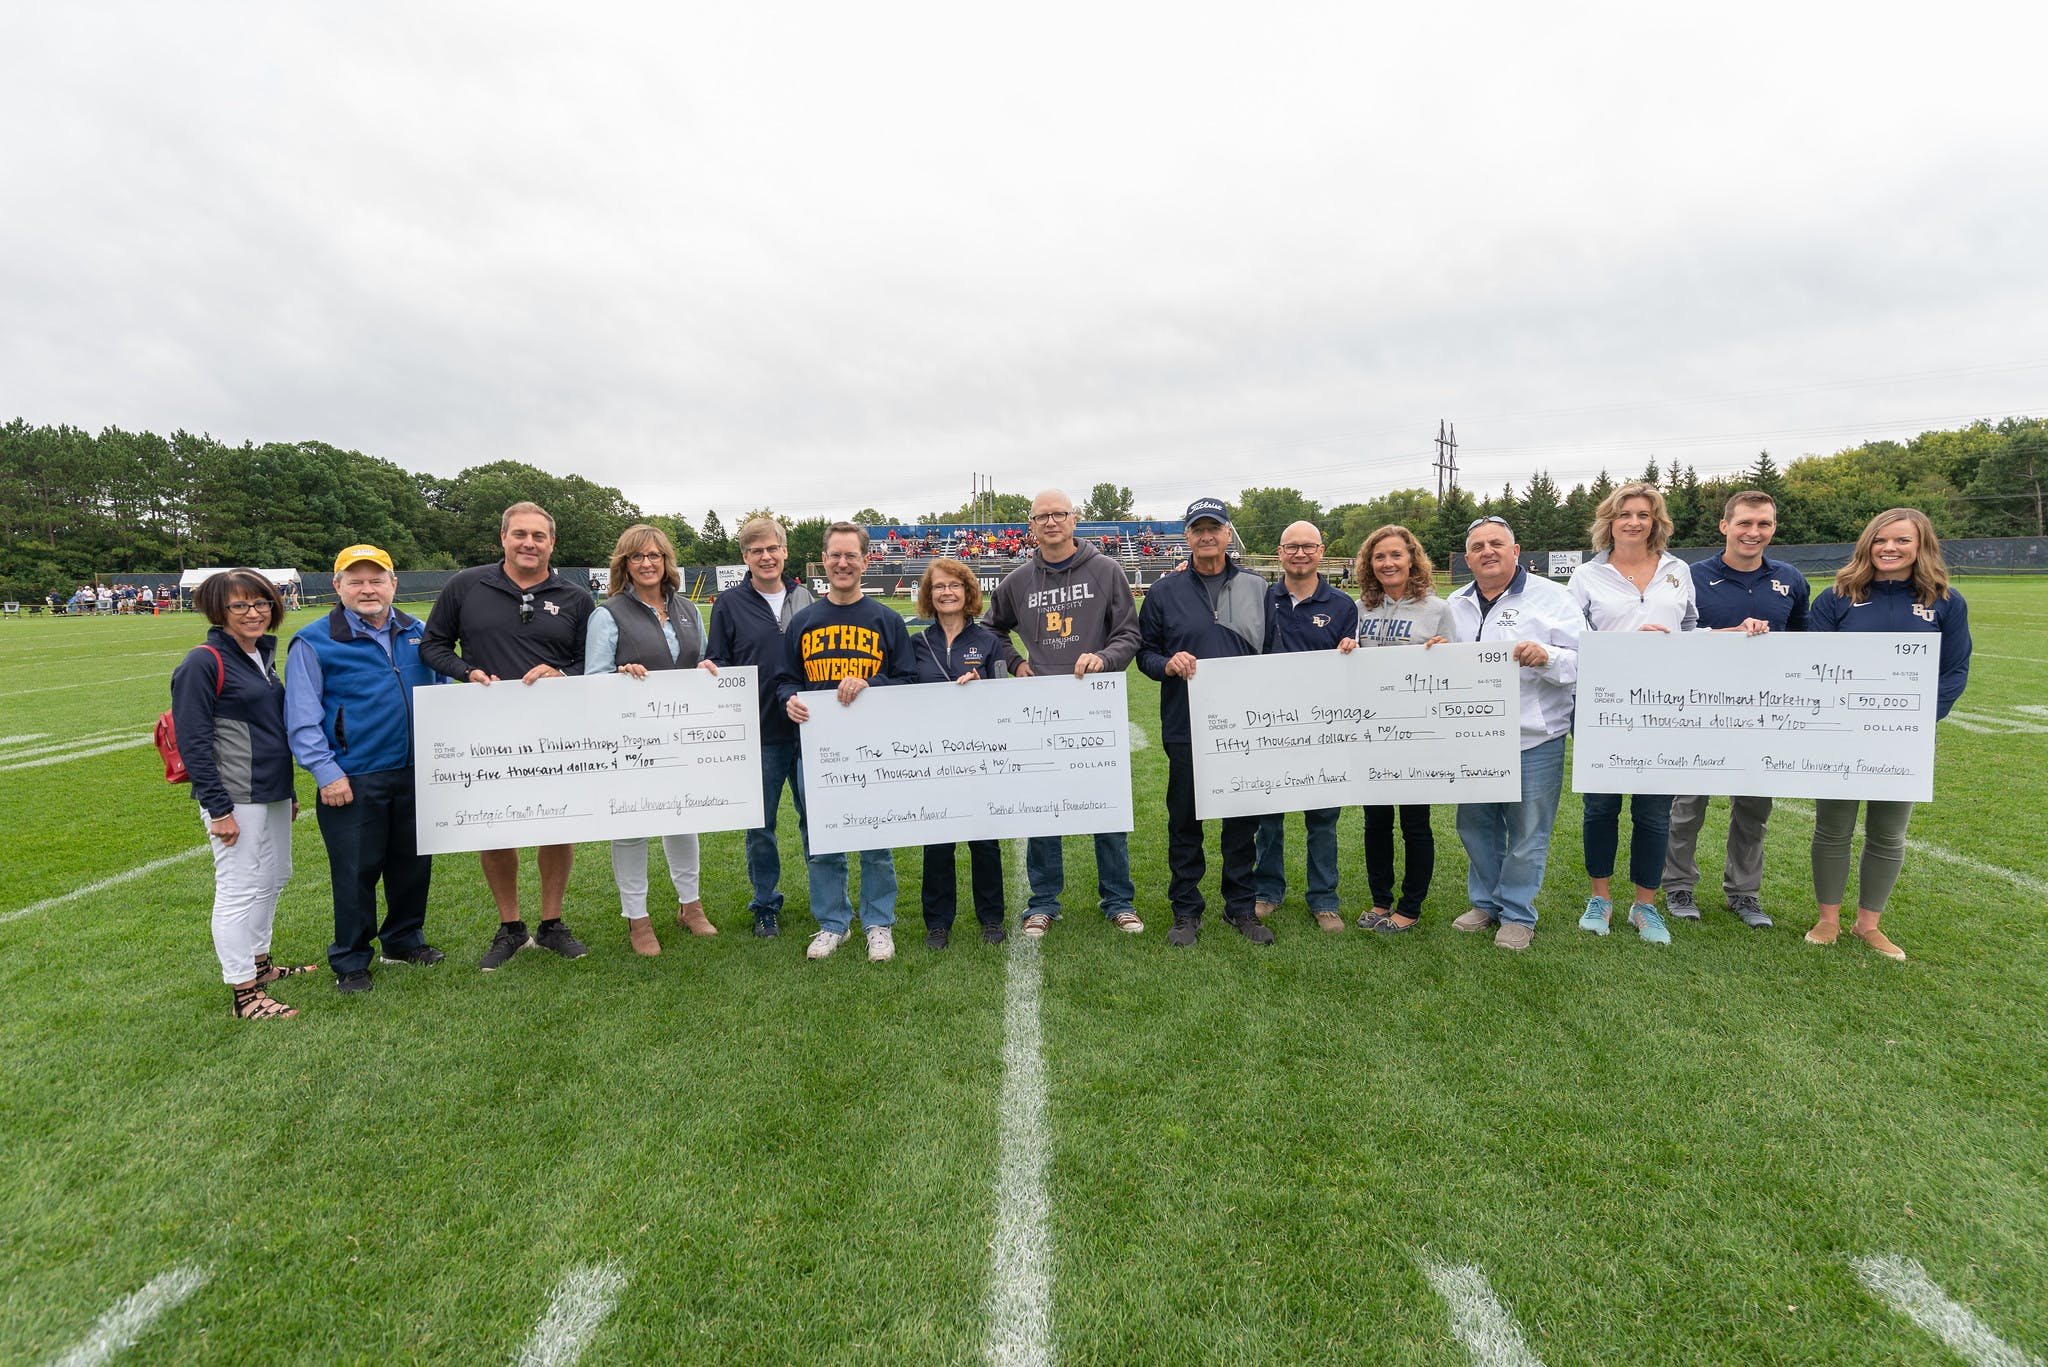 Proponents of the four winning proposals received checks for their groups before the September 7 football game.